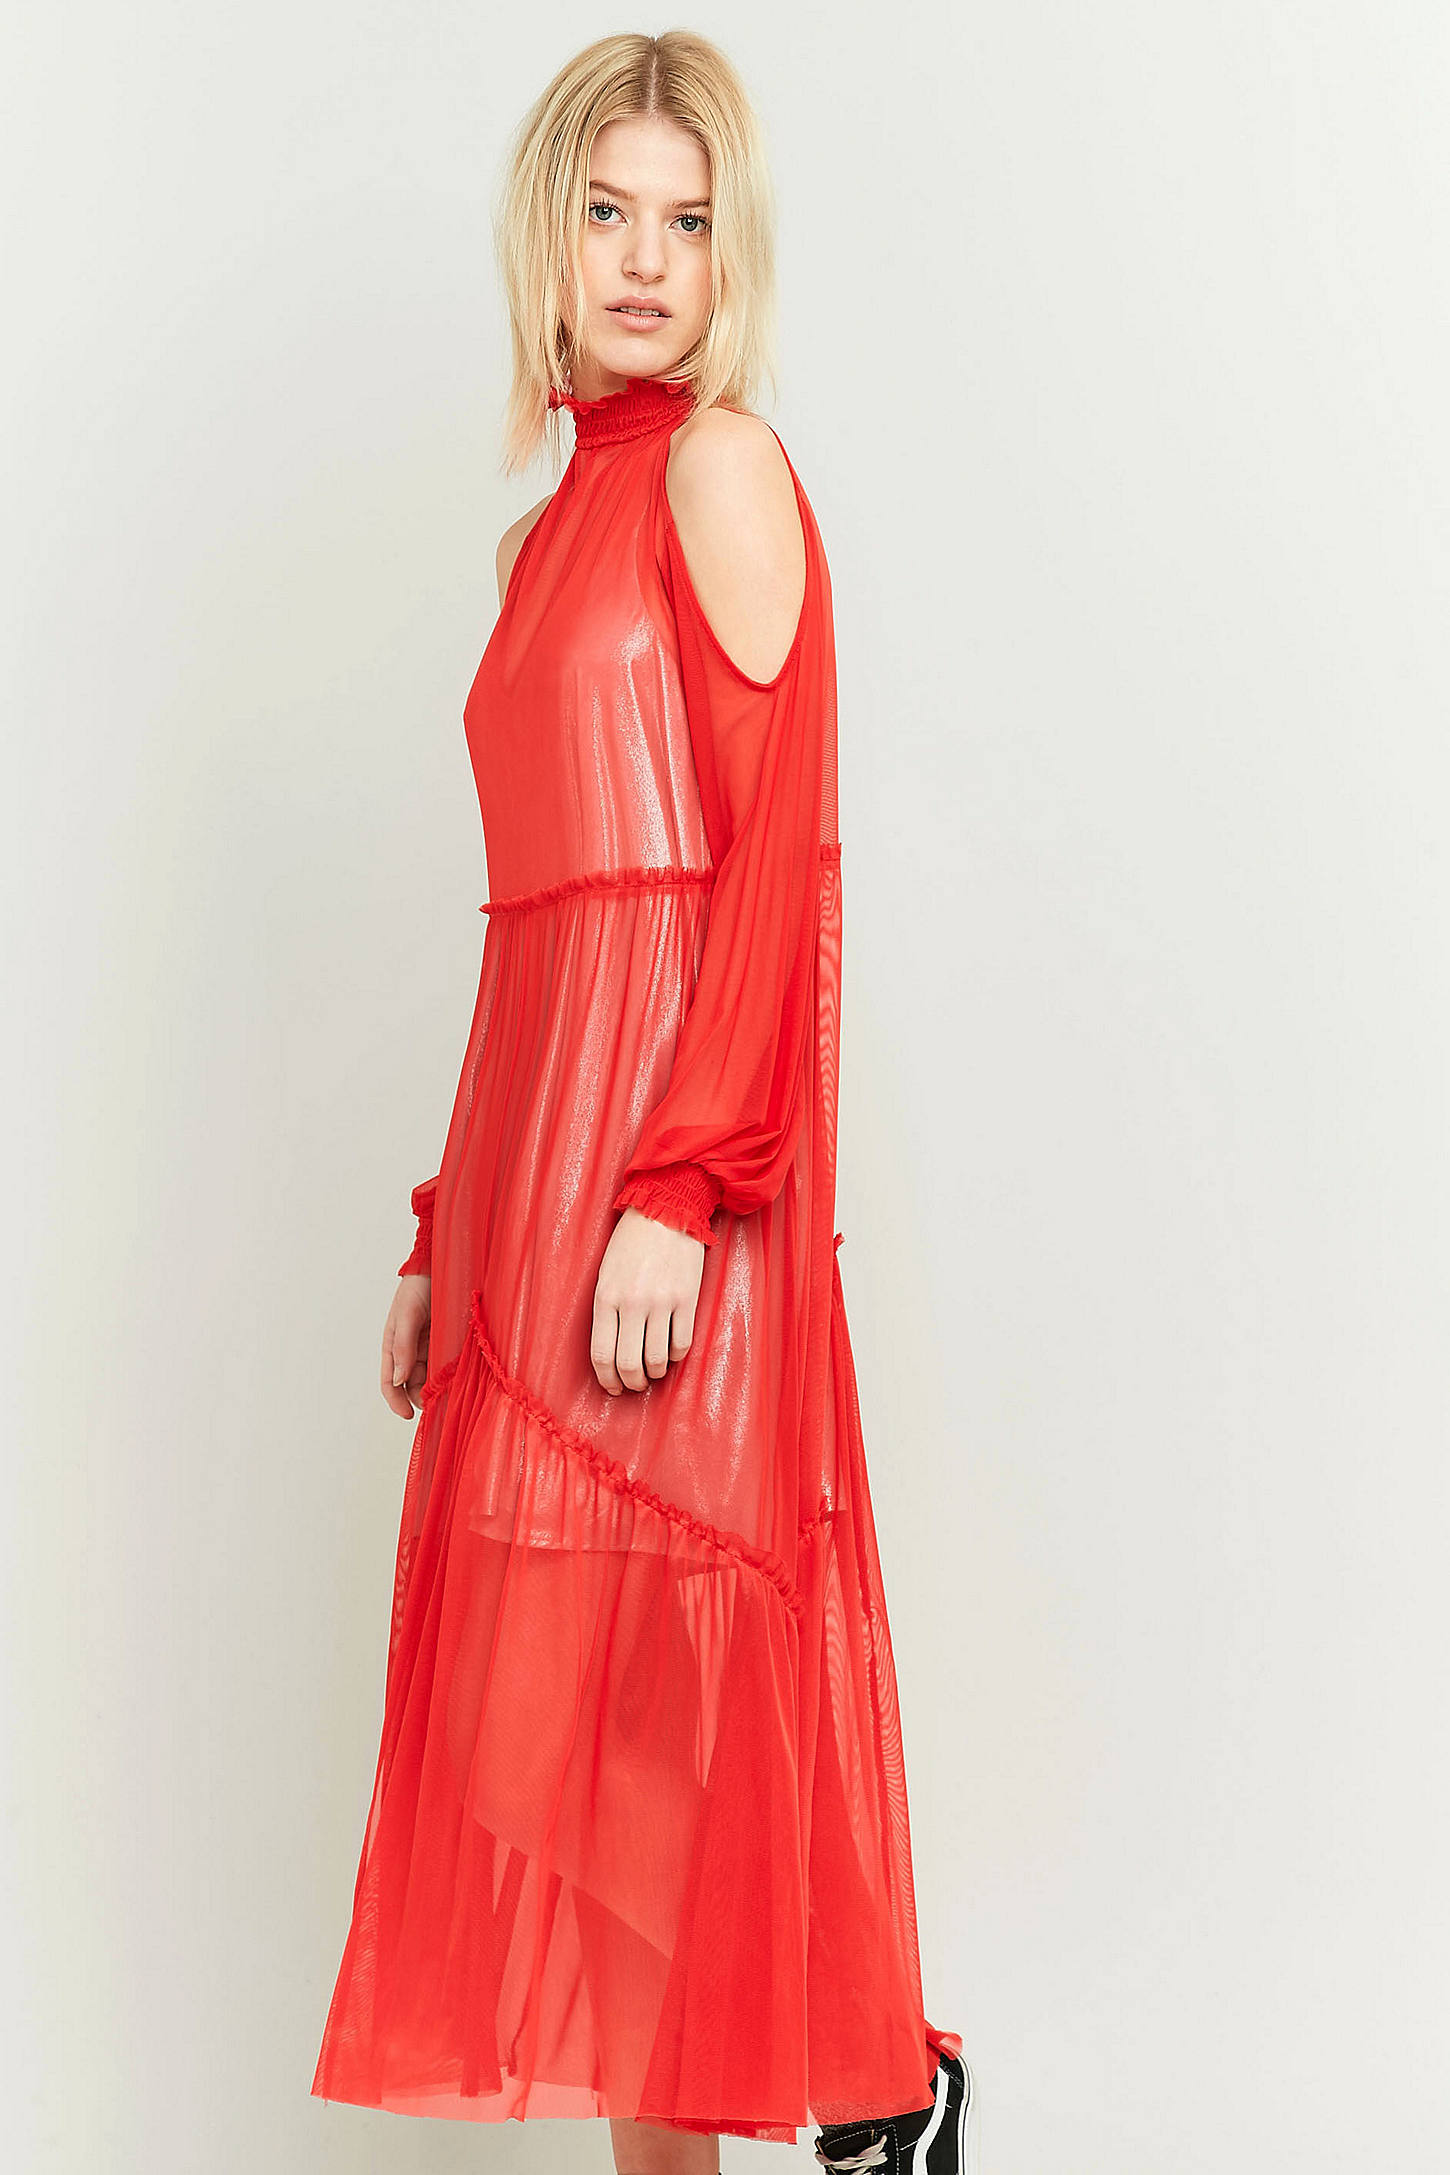 Pins & Needles Sheer Red Ruffle Maxi Dress | Urban Outfitters